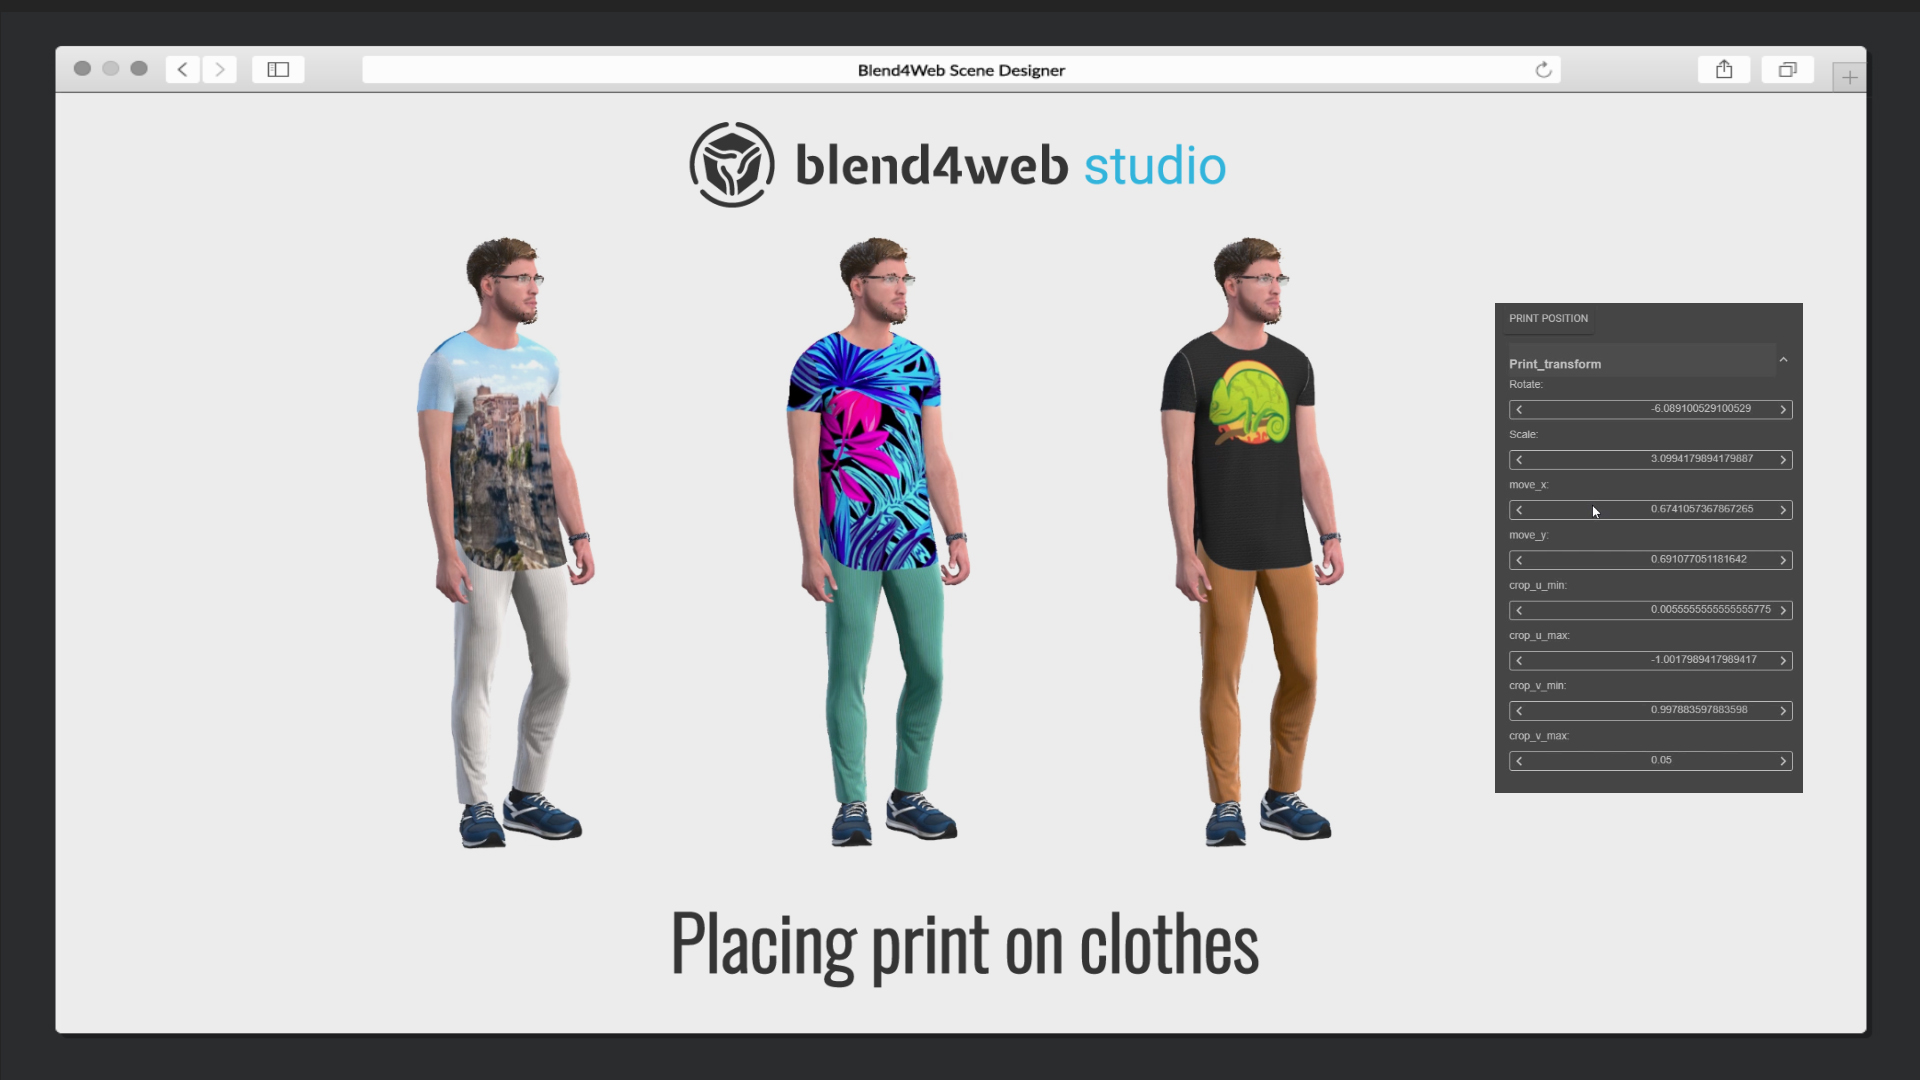 Blend4Web Studio: placing a print on clothes